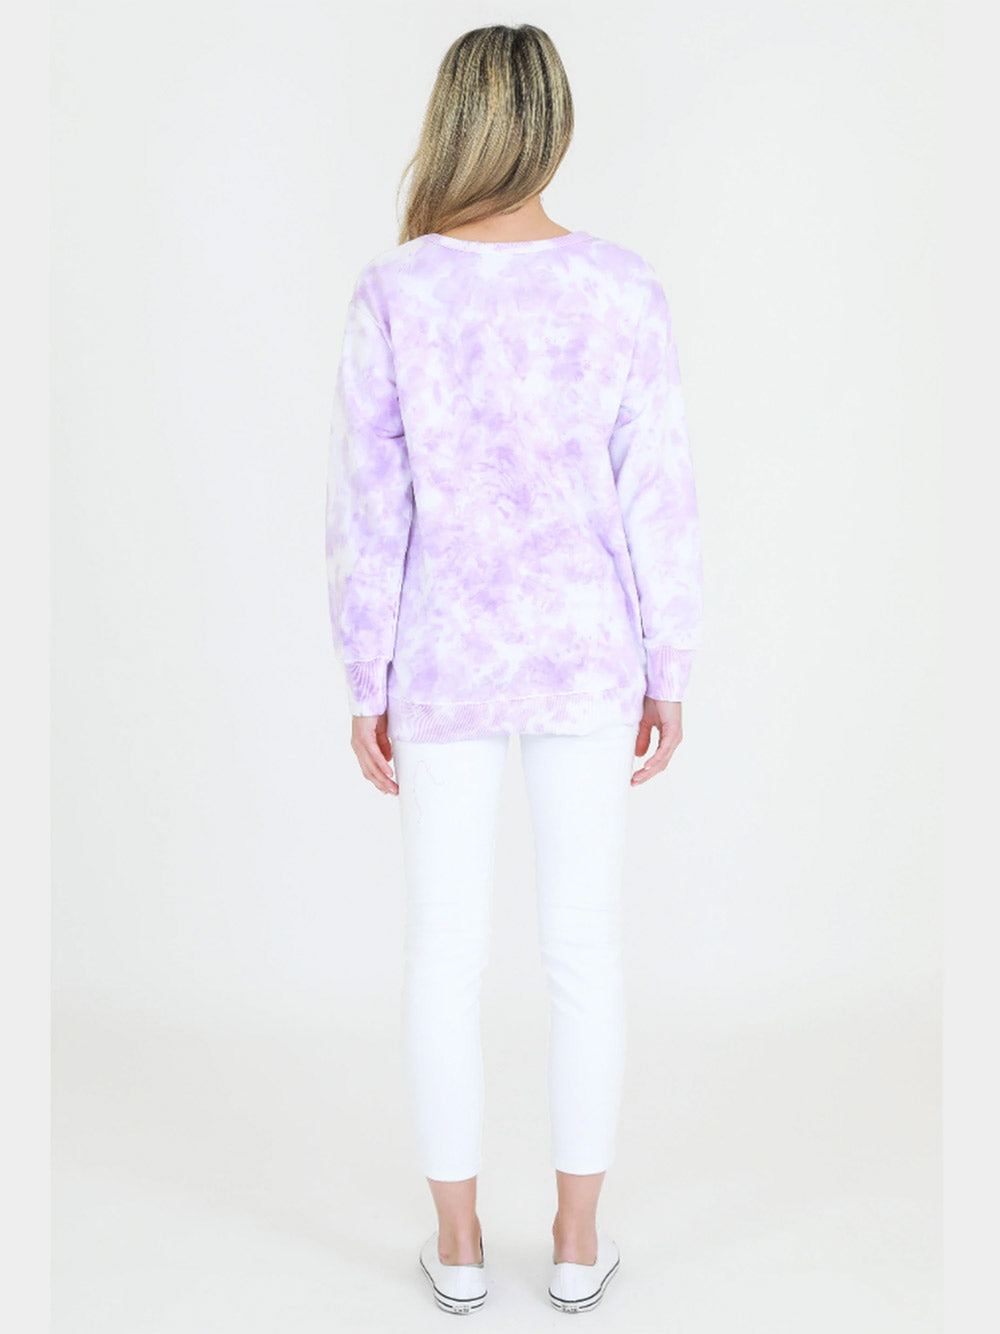 3RD STORY Ulverstone Tie Dye Sweater - LILAC